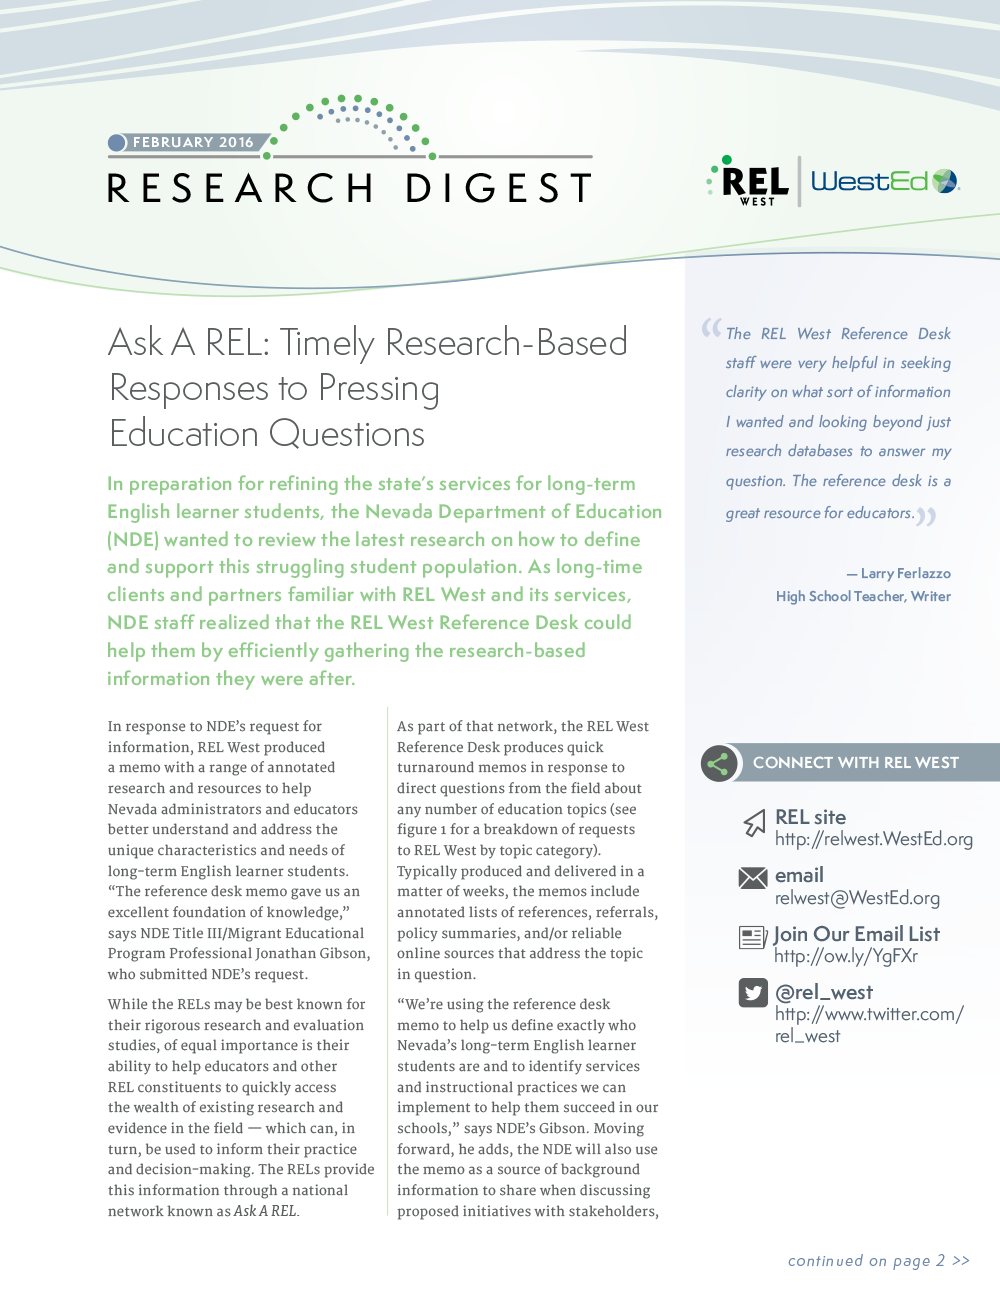 rel west research digest: february 2016 — wested